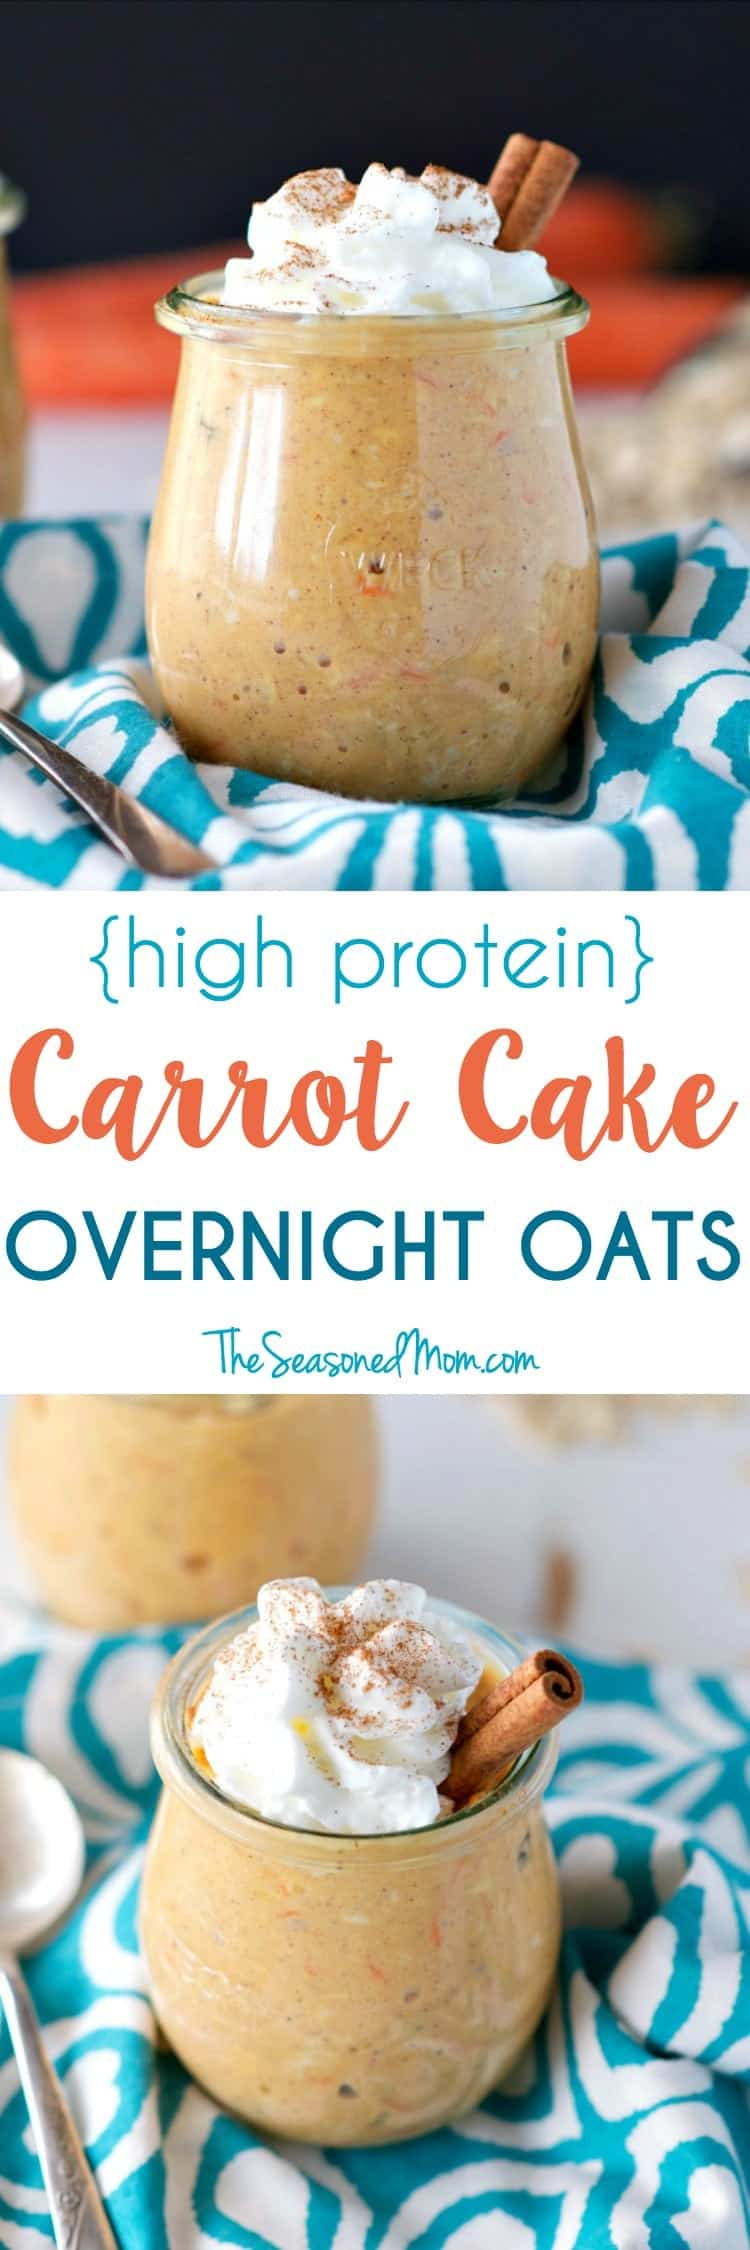 A delicious and healthy spring breakfast doesn't get any easier than these creamy make-ahead High Protein Carrot Cake Overnight Oats! Thanks to plump raisins, shredded coconut, and warm spices, you'll think that you're indulging in dessert...but with plenty of fiber and protein, the clean eating breakfast will keep you full and energized all morning long!